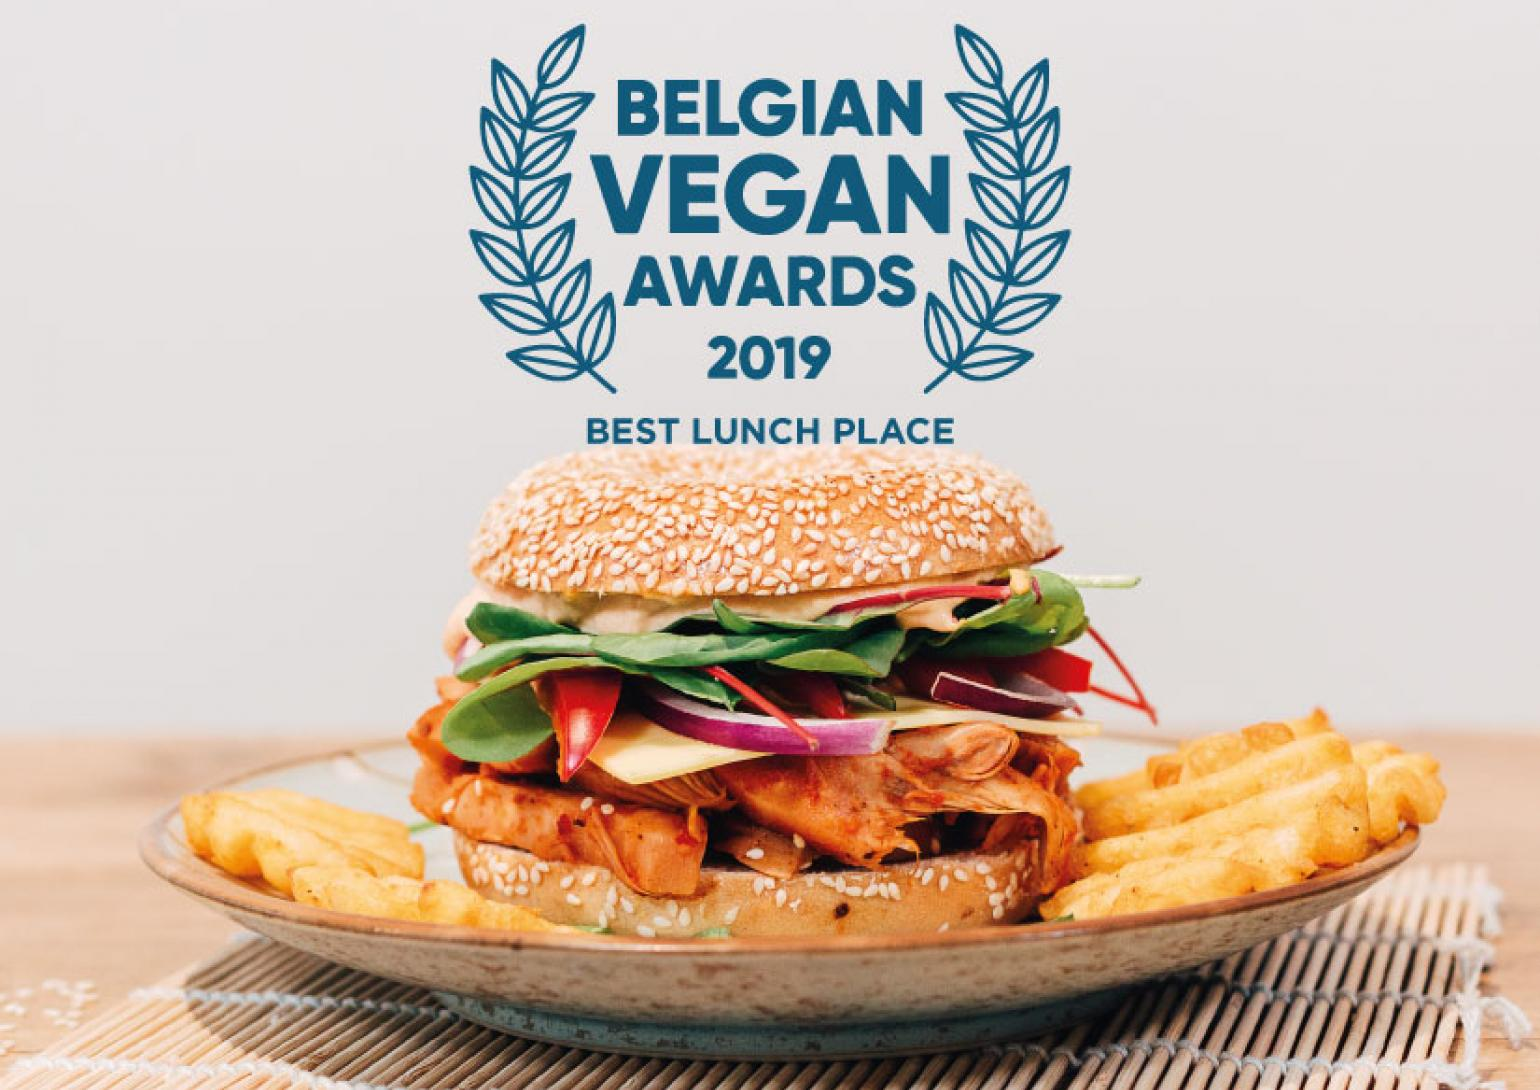 Vegan Awards